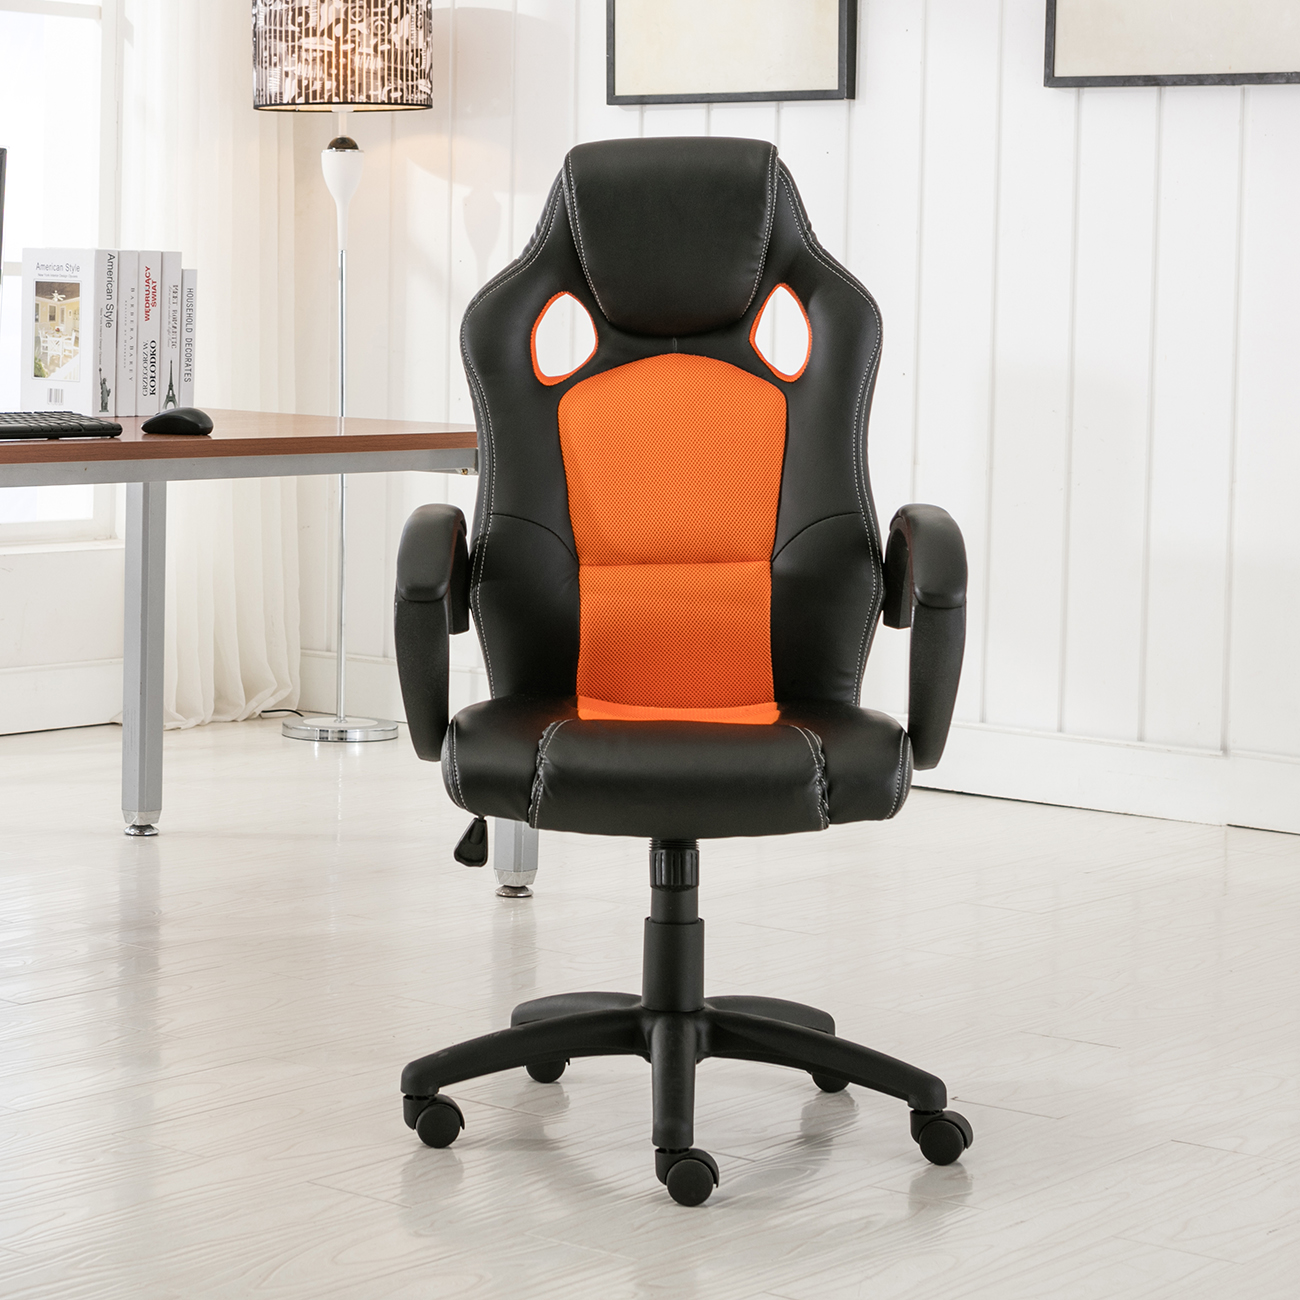 High back race car style bucket seat office desk chair for New style chair